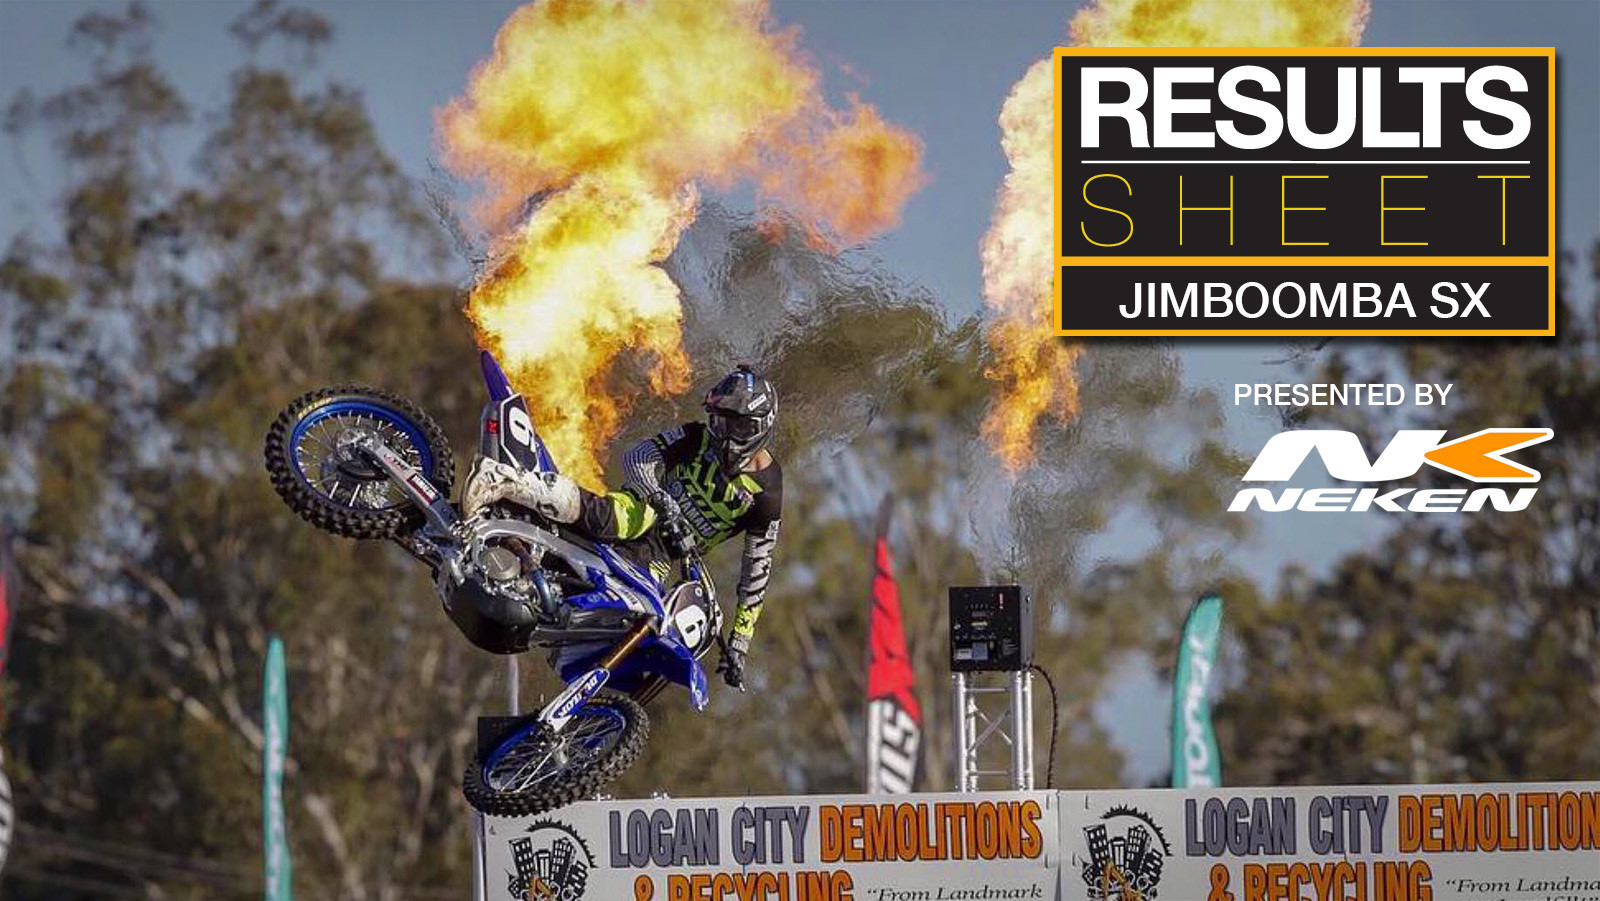 Results Sheet: 2018 Jimboomba Supercross